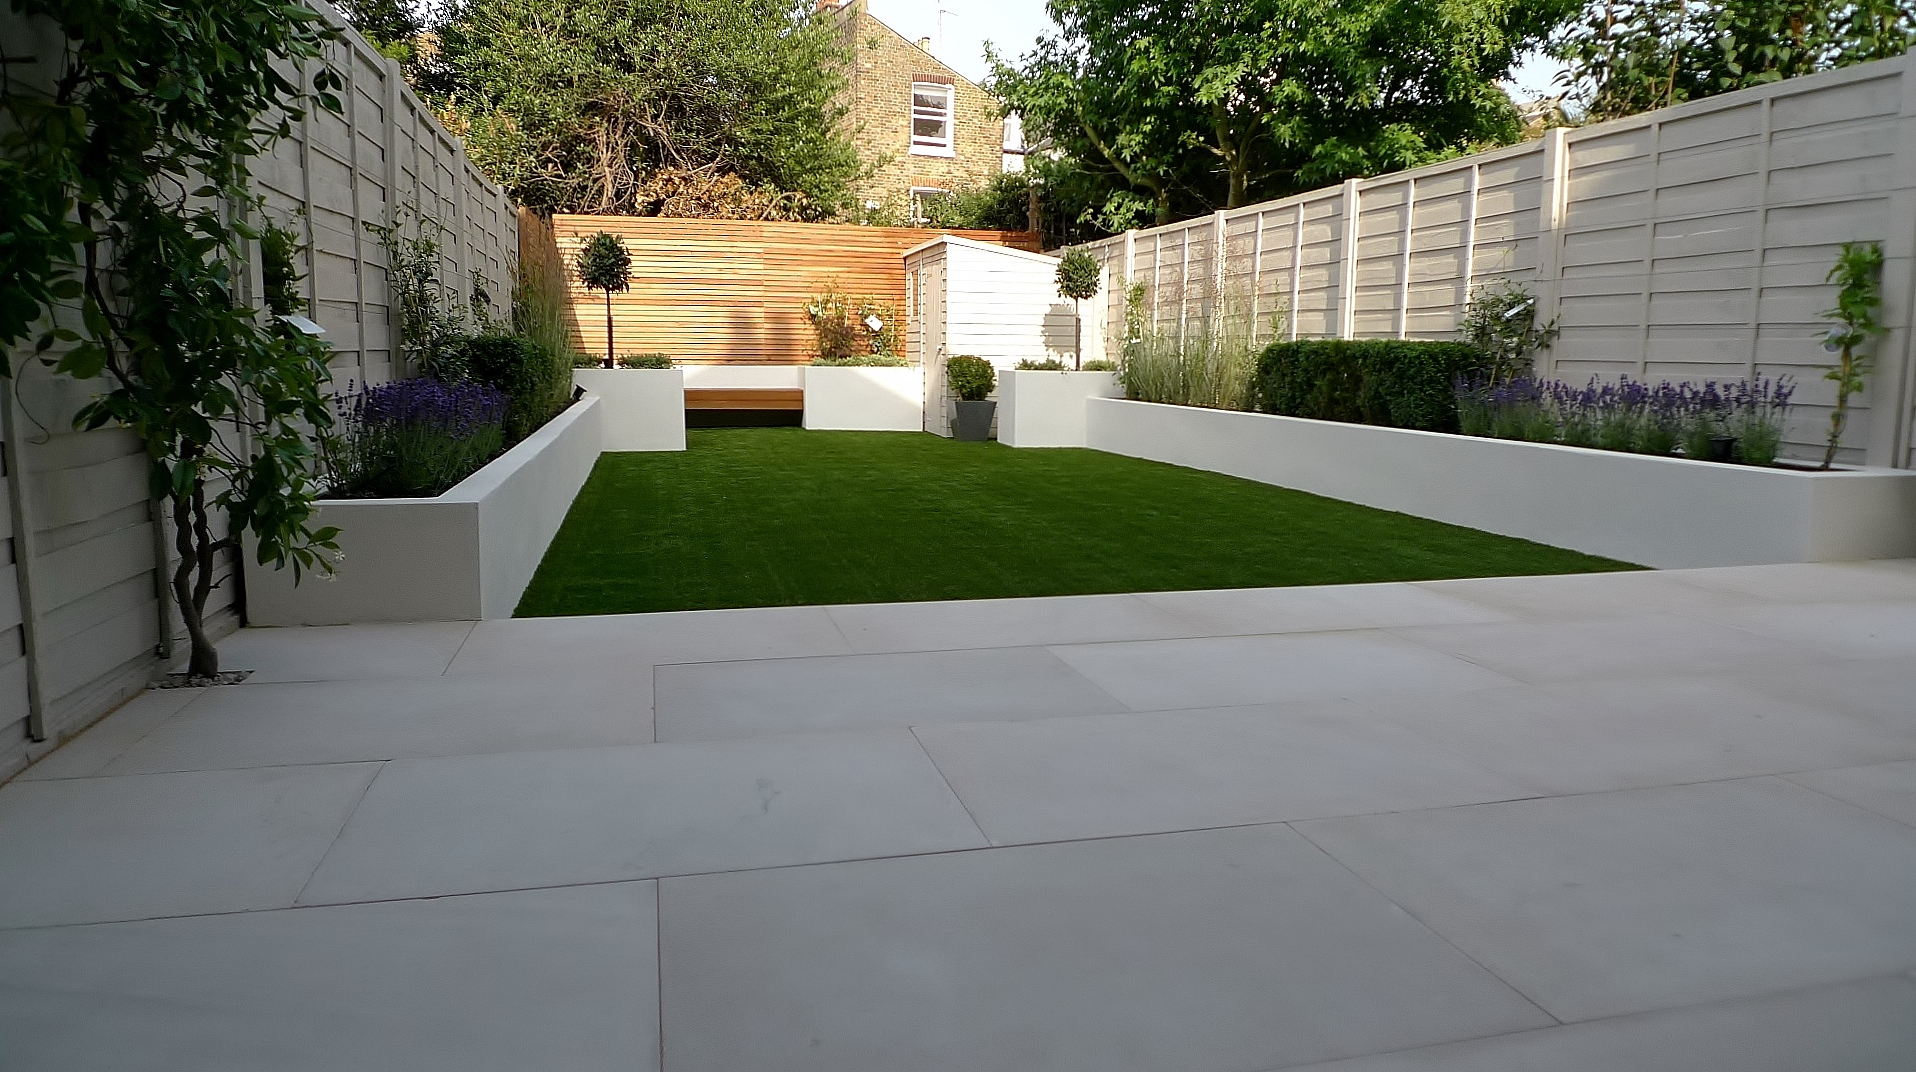 Modern balham garden design london garden design for Garden design plans uk